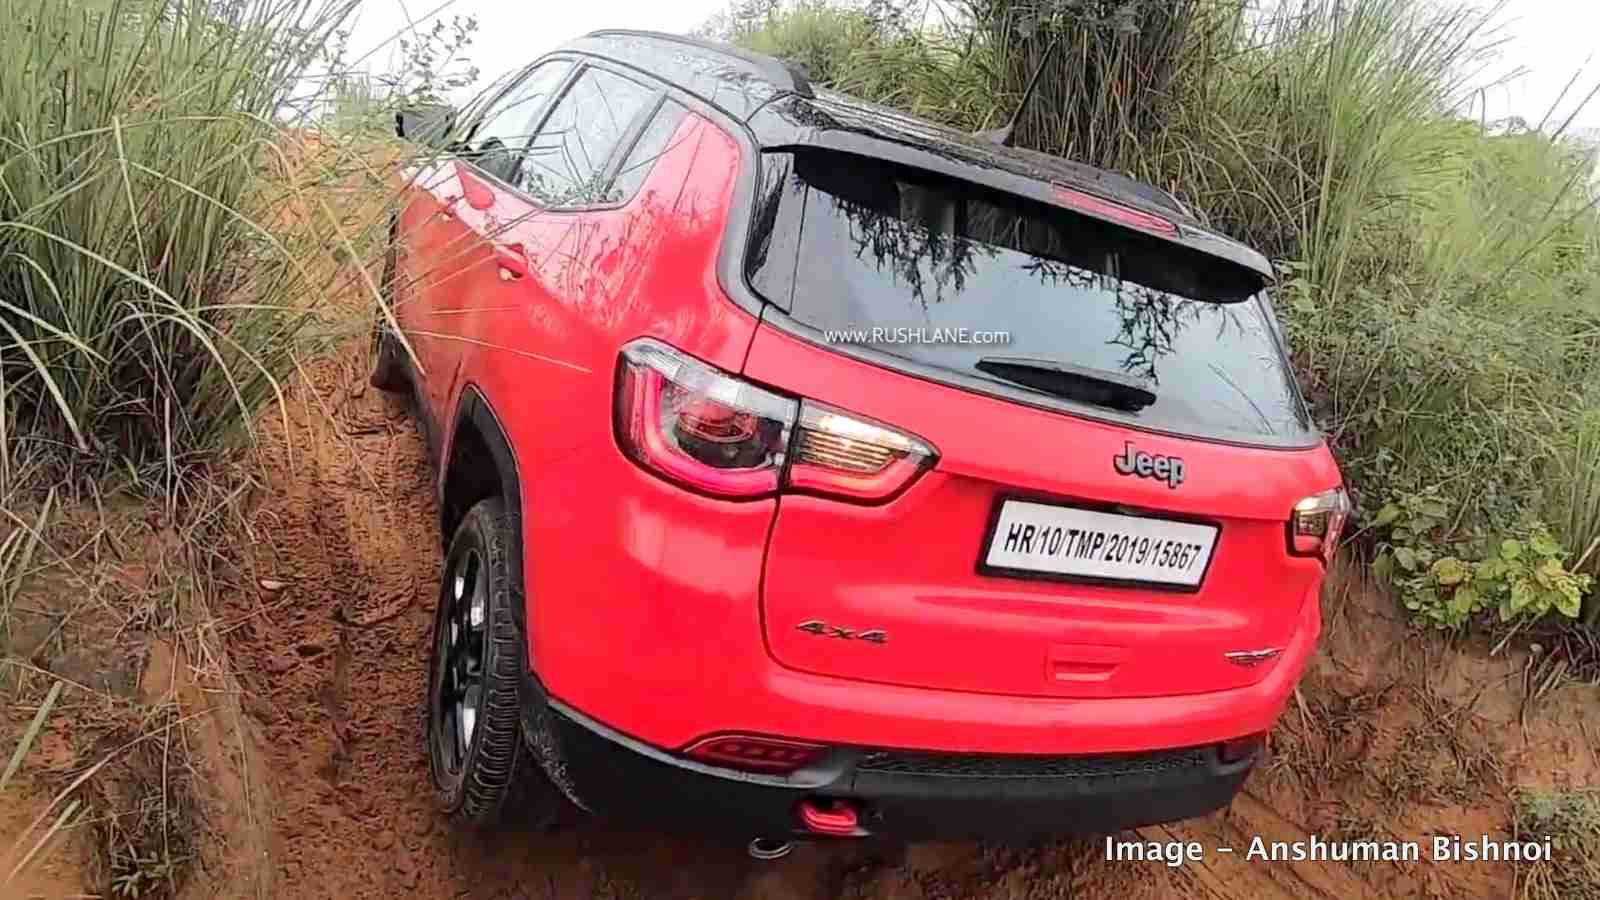 Jeep Compass trailhawk off-road